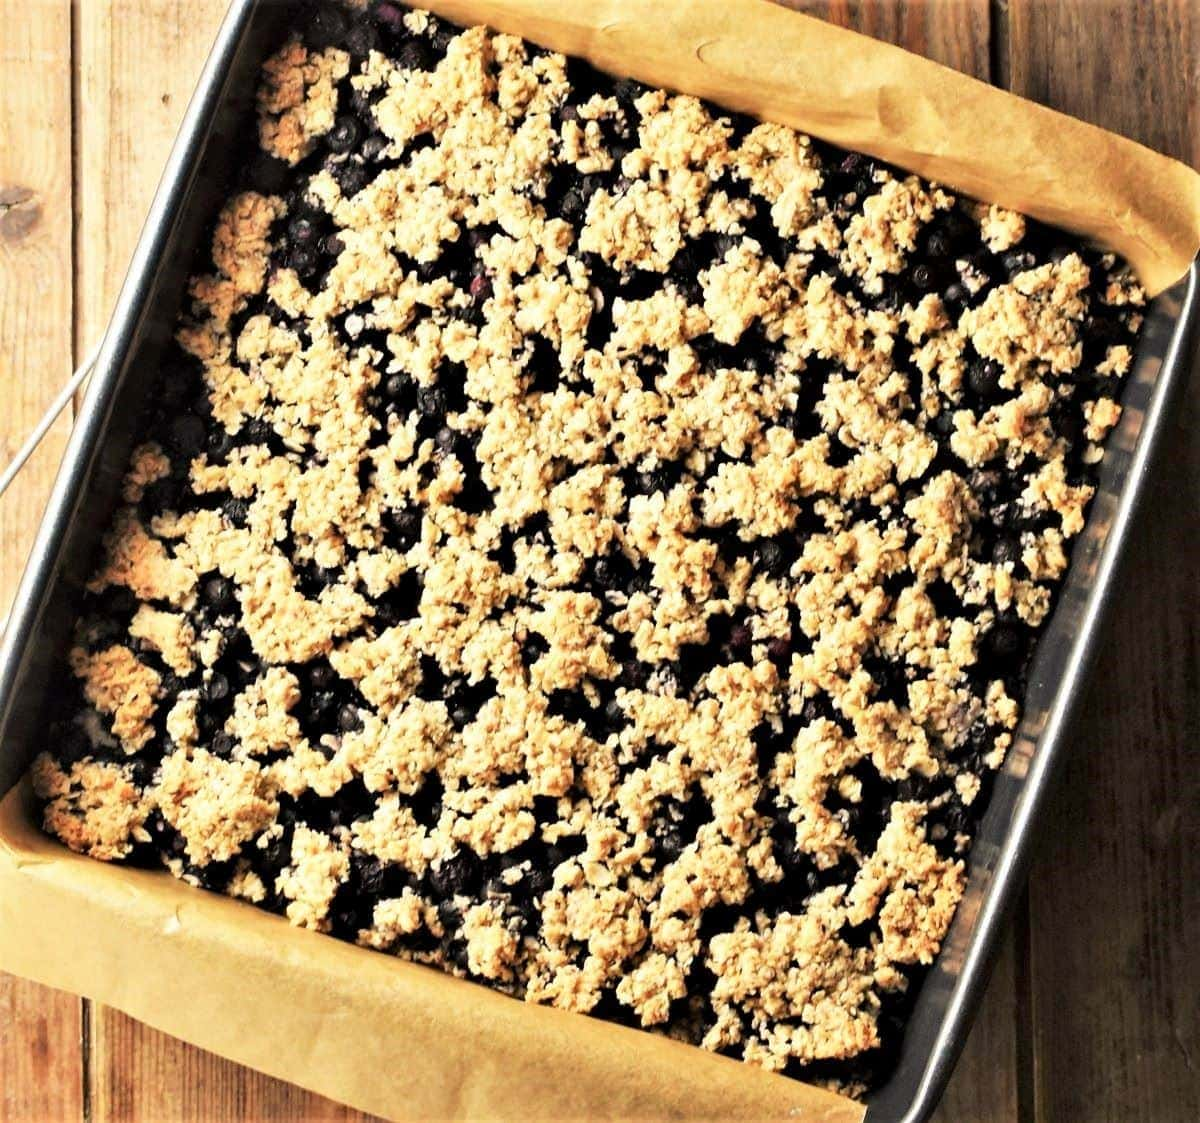 Blueberry bars recipe with crumbly topping in square pan.